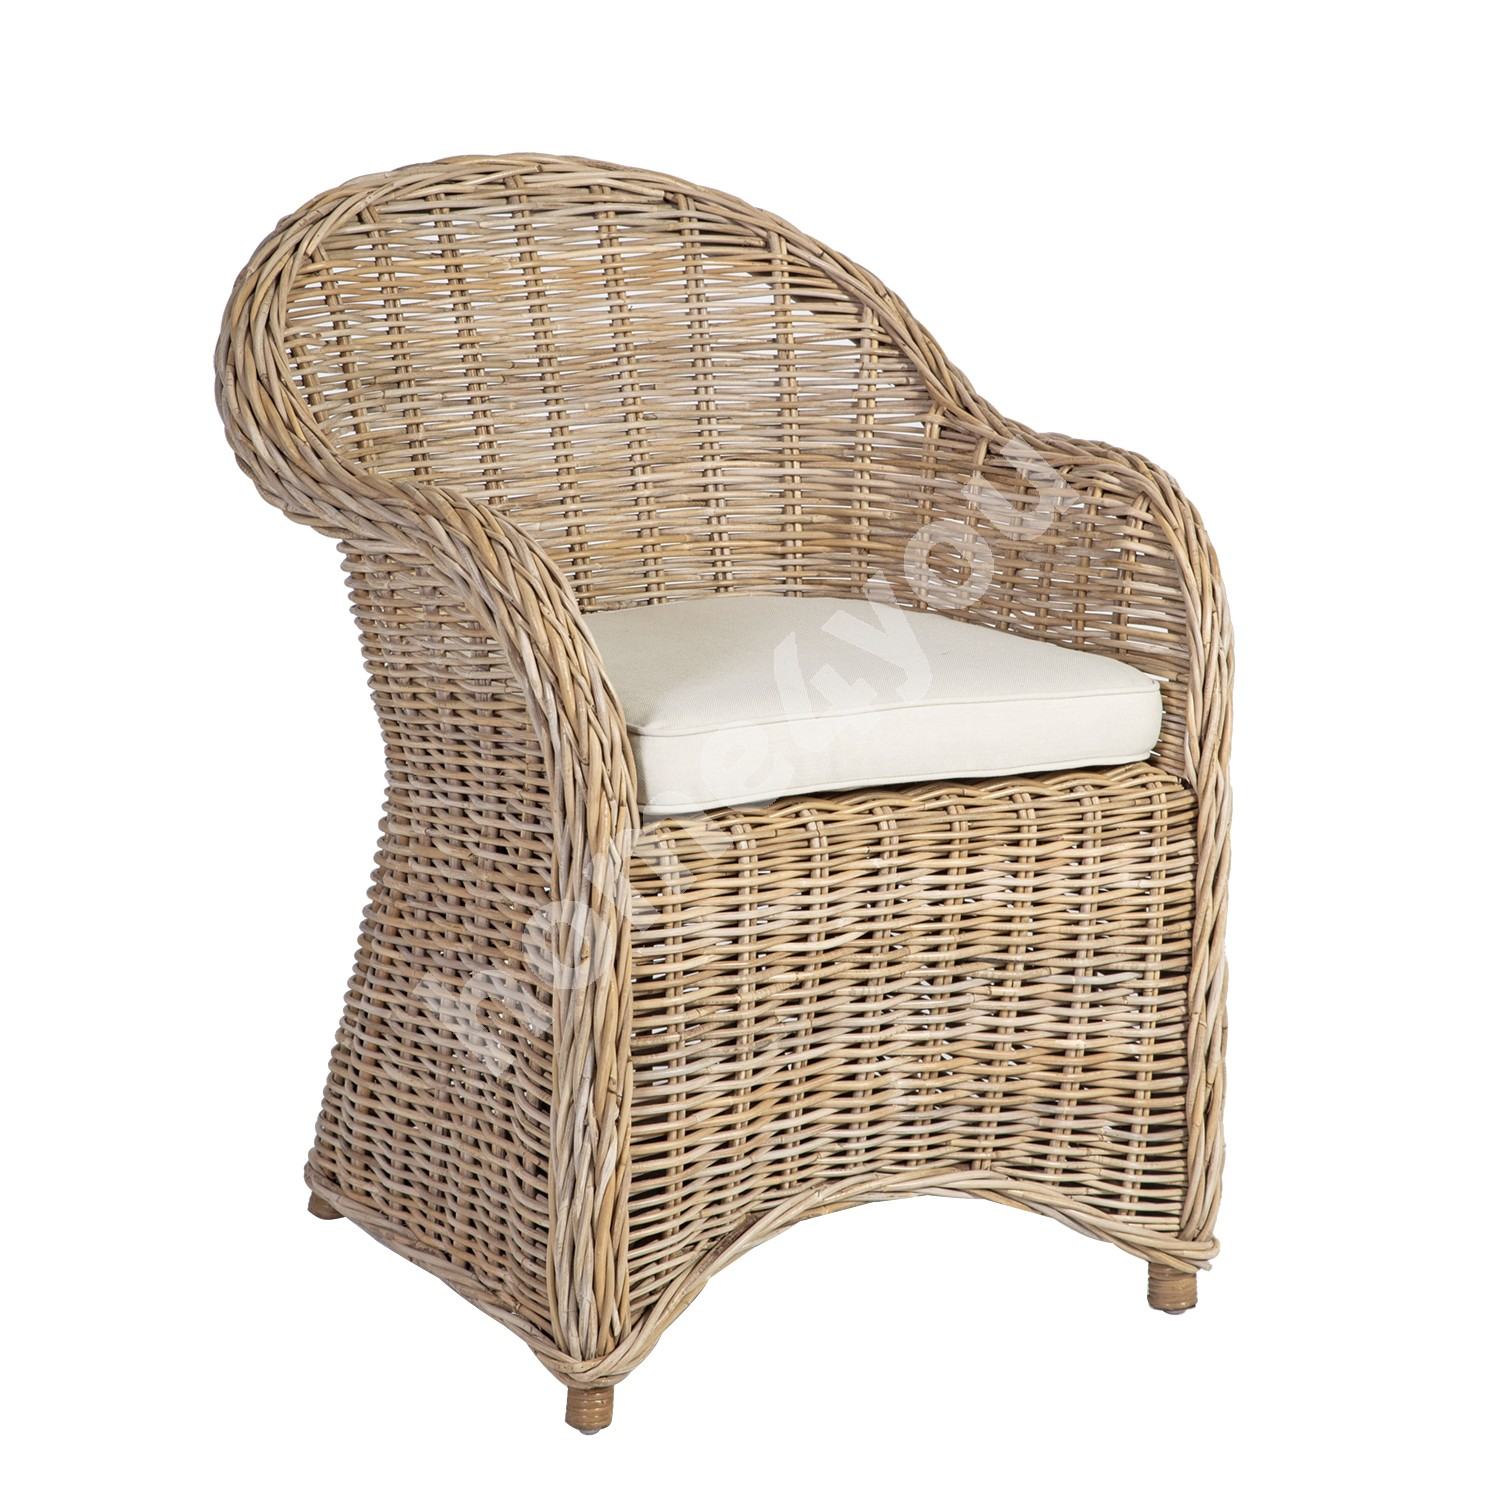 Armchair KATALINA with cushion 63x66xH85cm, rattan frame with natural rattan weaving, color: grey